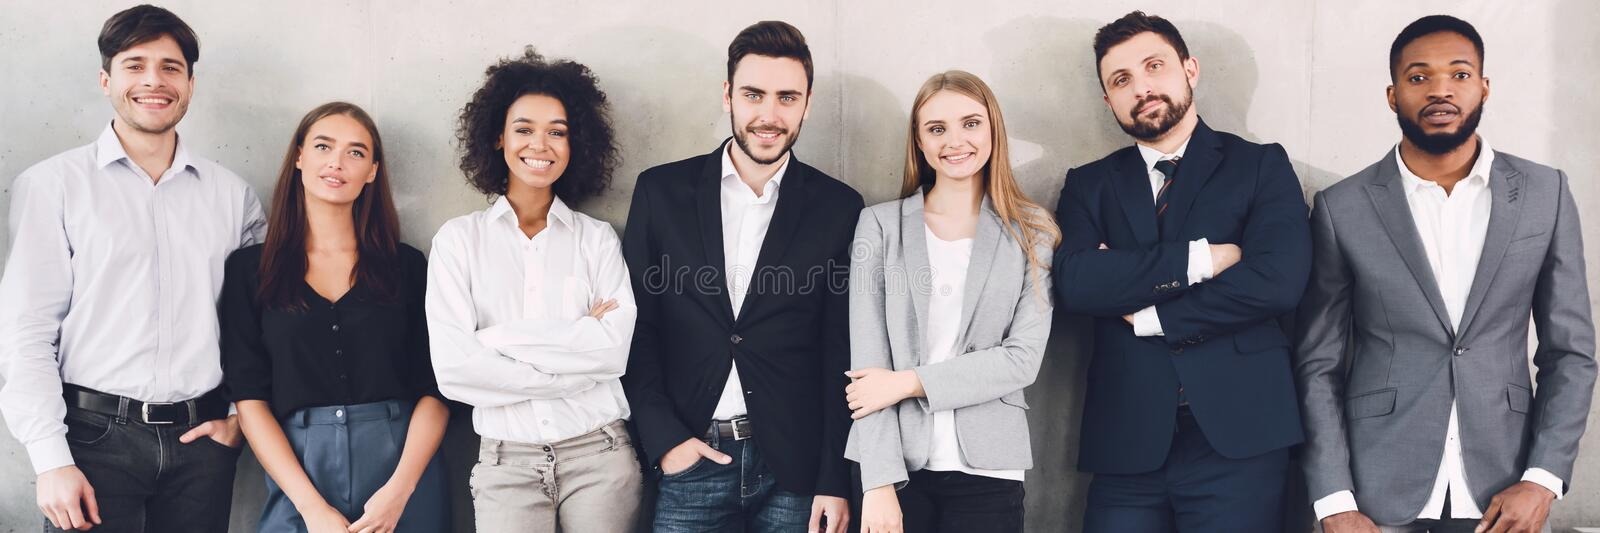 Diverse business team smiling to camera in office stock image